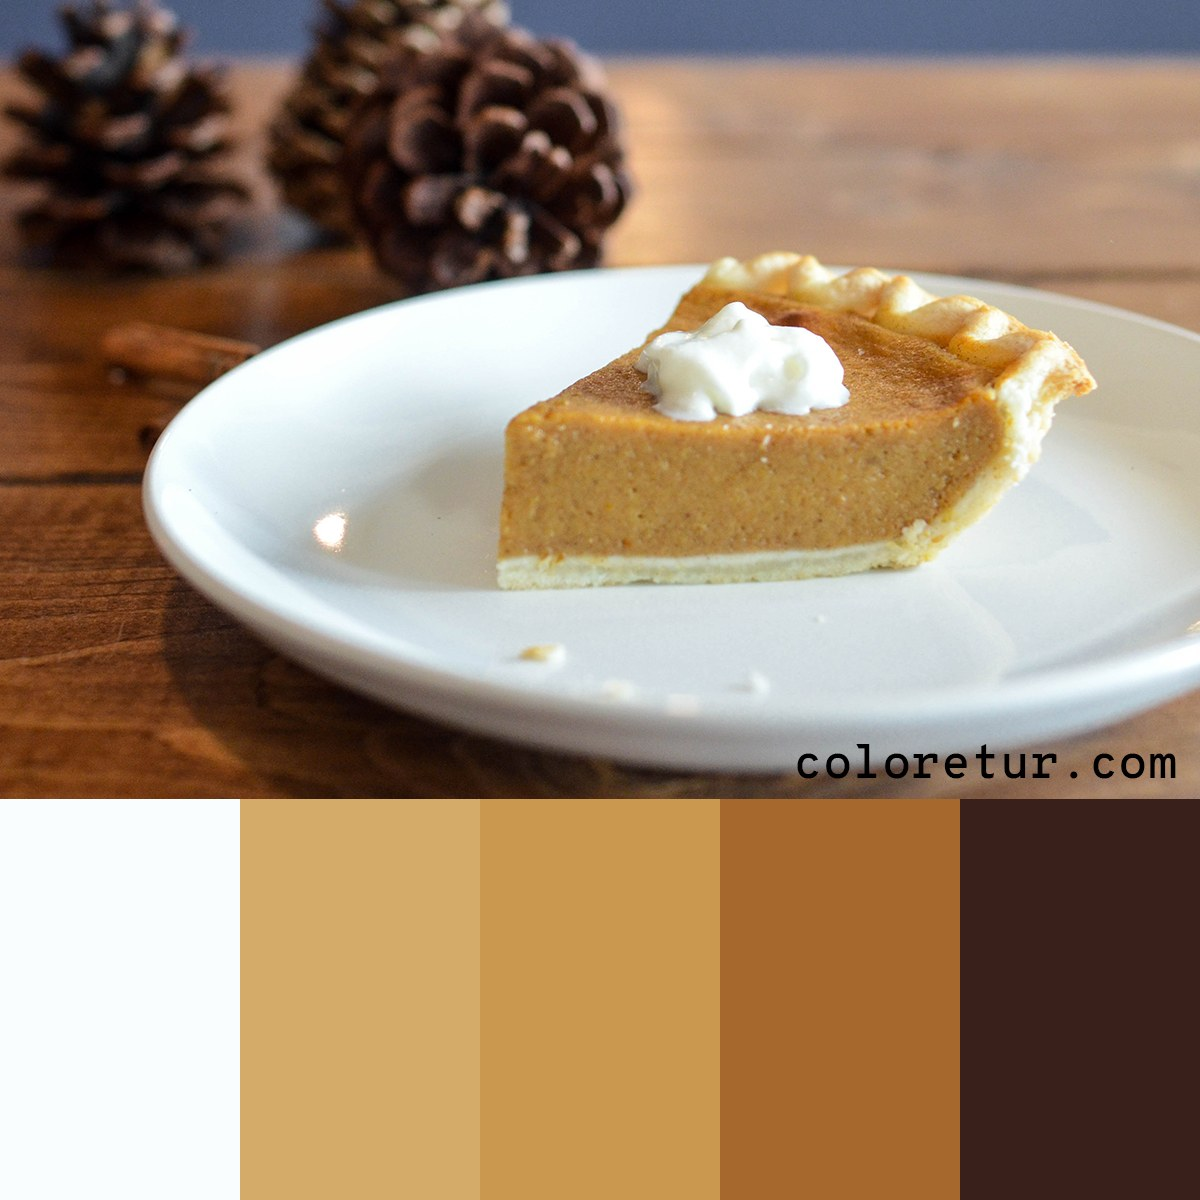 A warm, inviting palette using the warm spices in a traditional pumpkin pie.